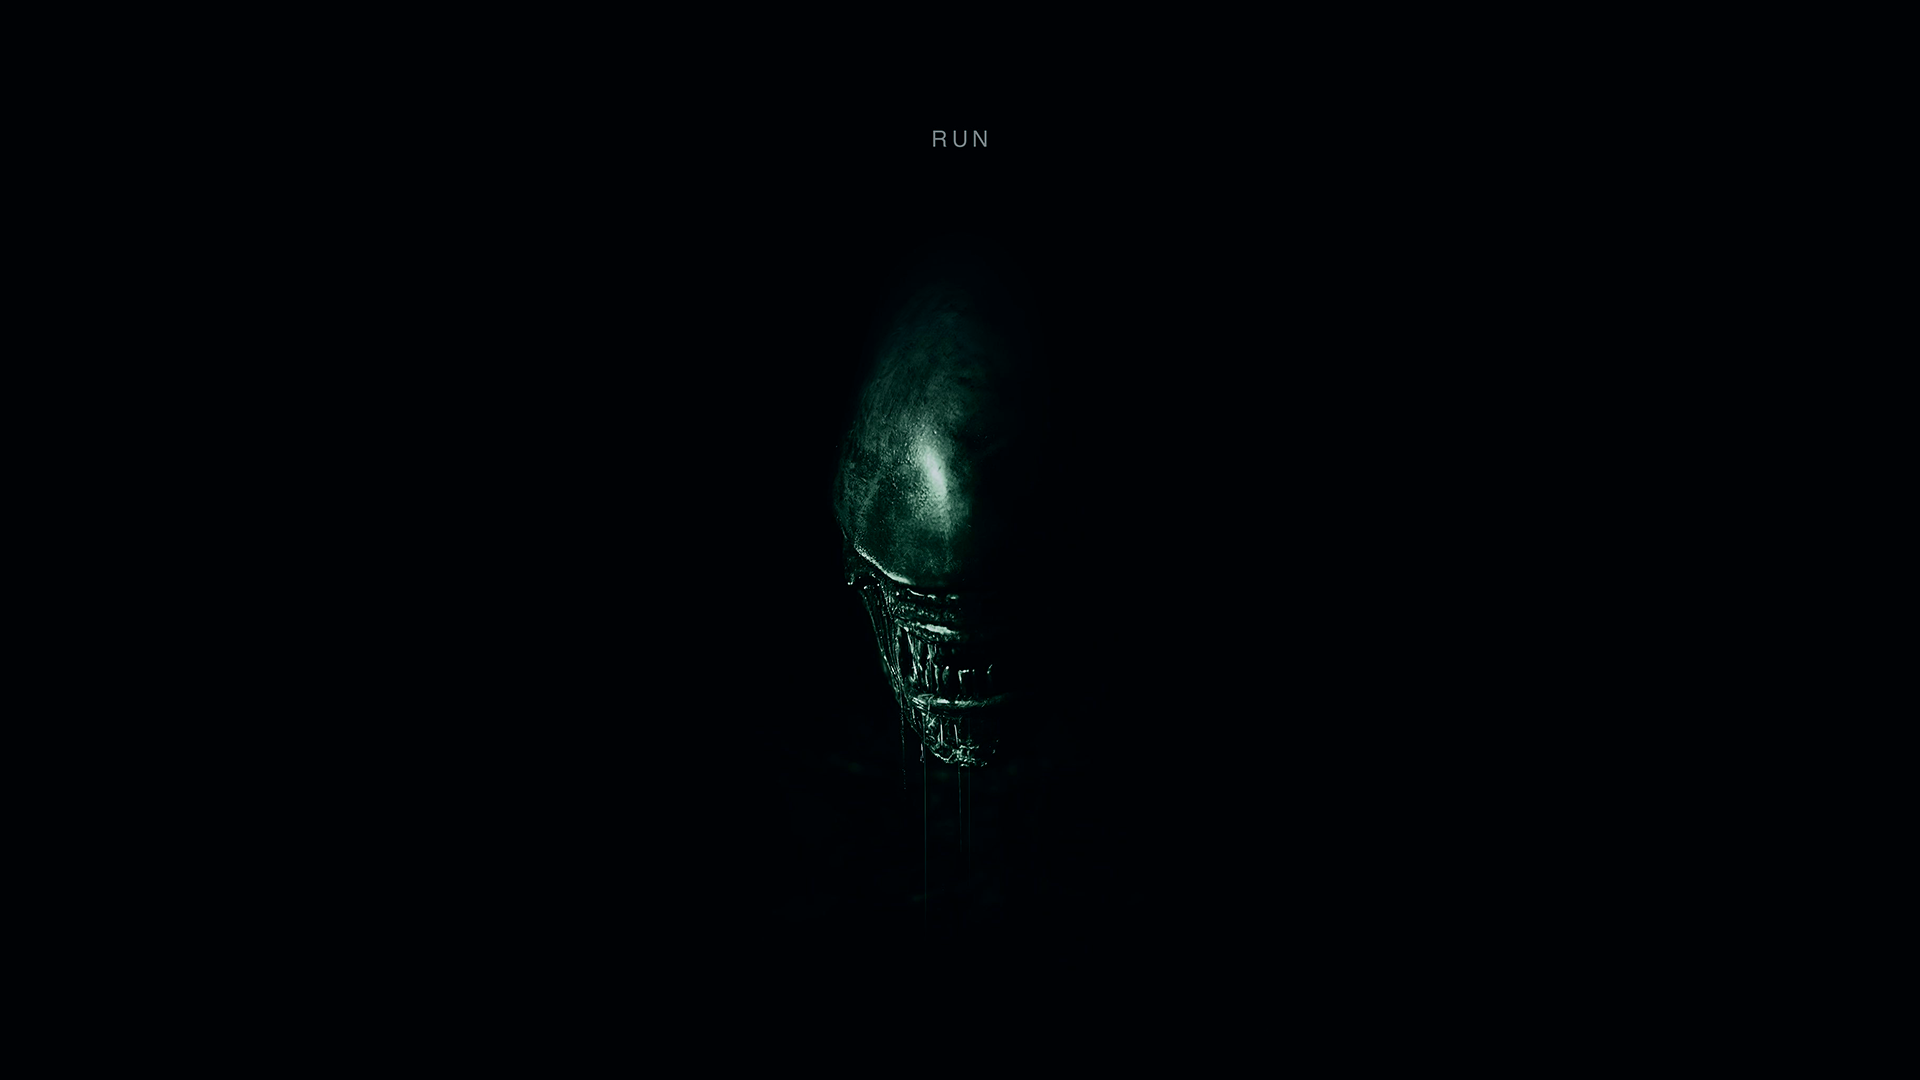 Alien Covenant Movie Desktop Wallpaper 61239 1920x1080 px 1920x1080